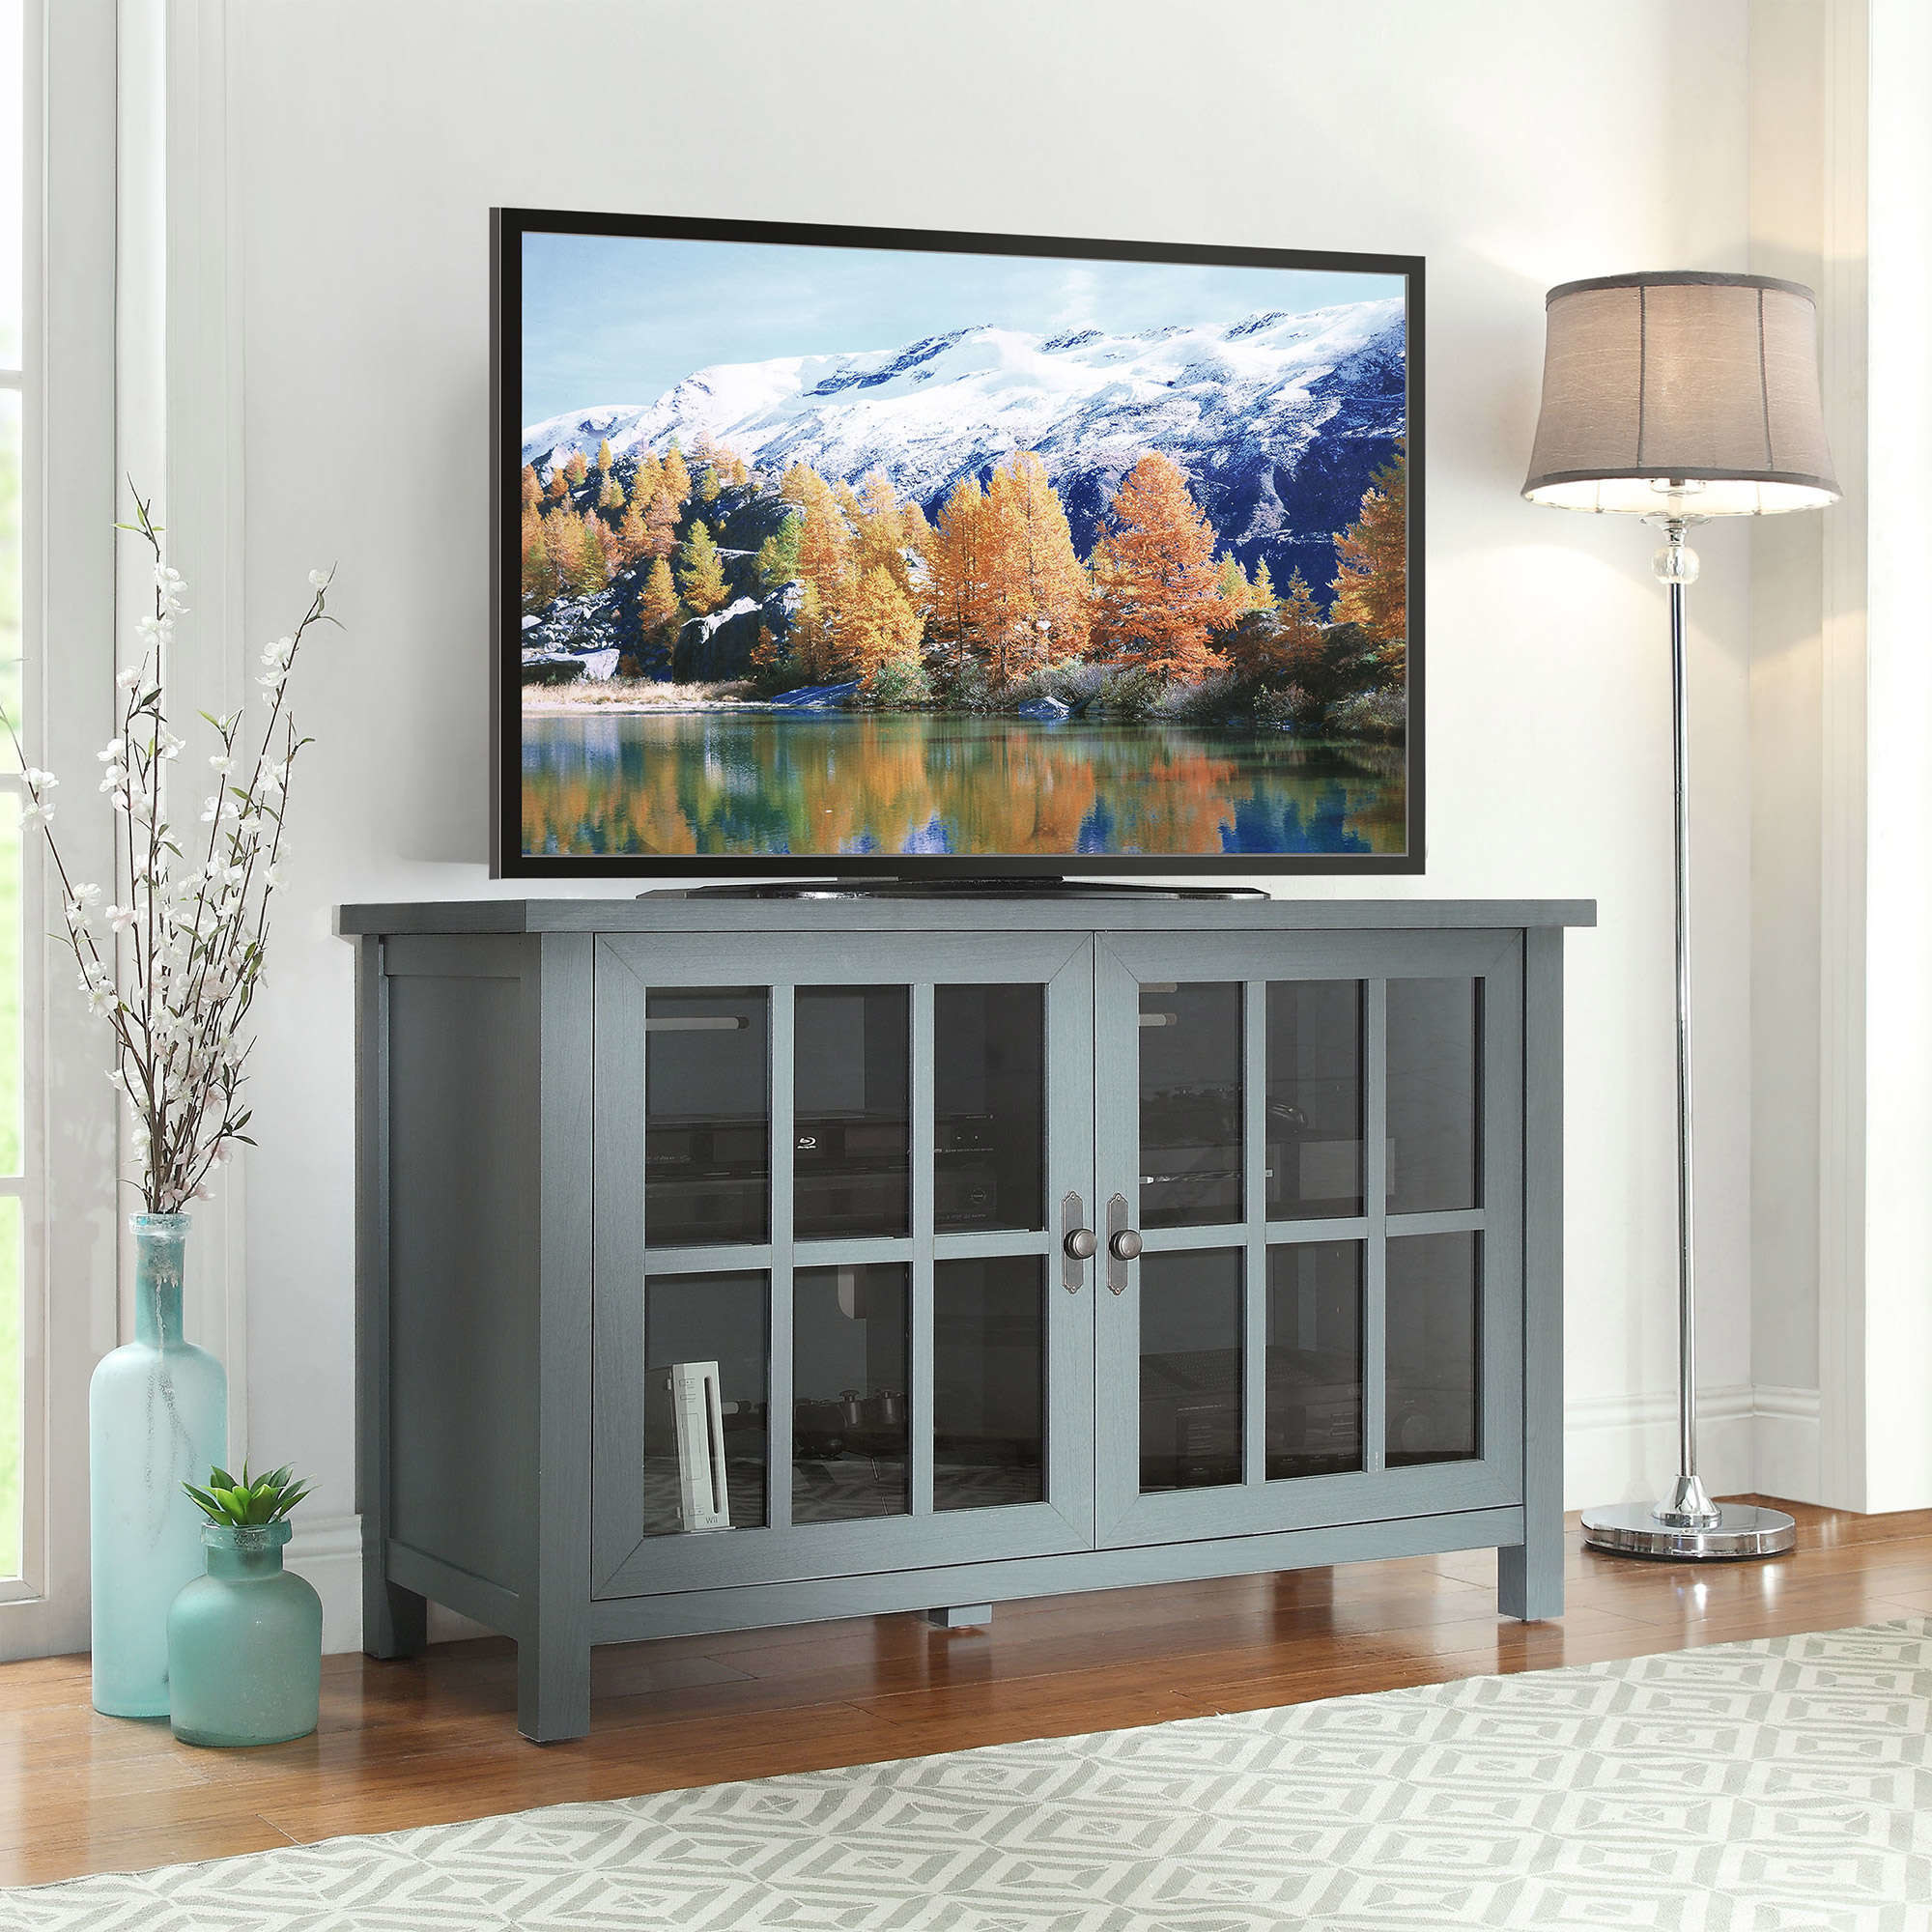 a blue TV stand with glass front cabinet doors